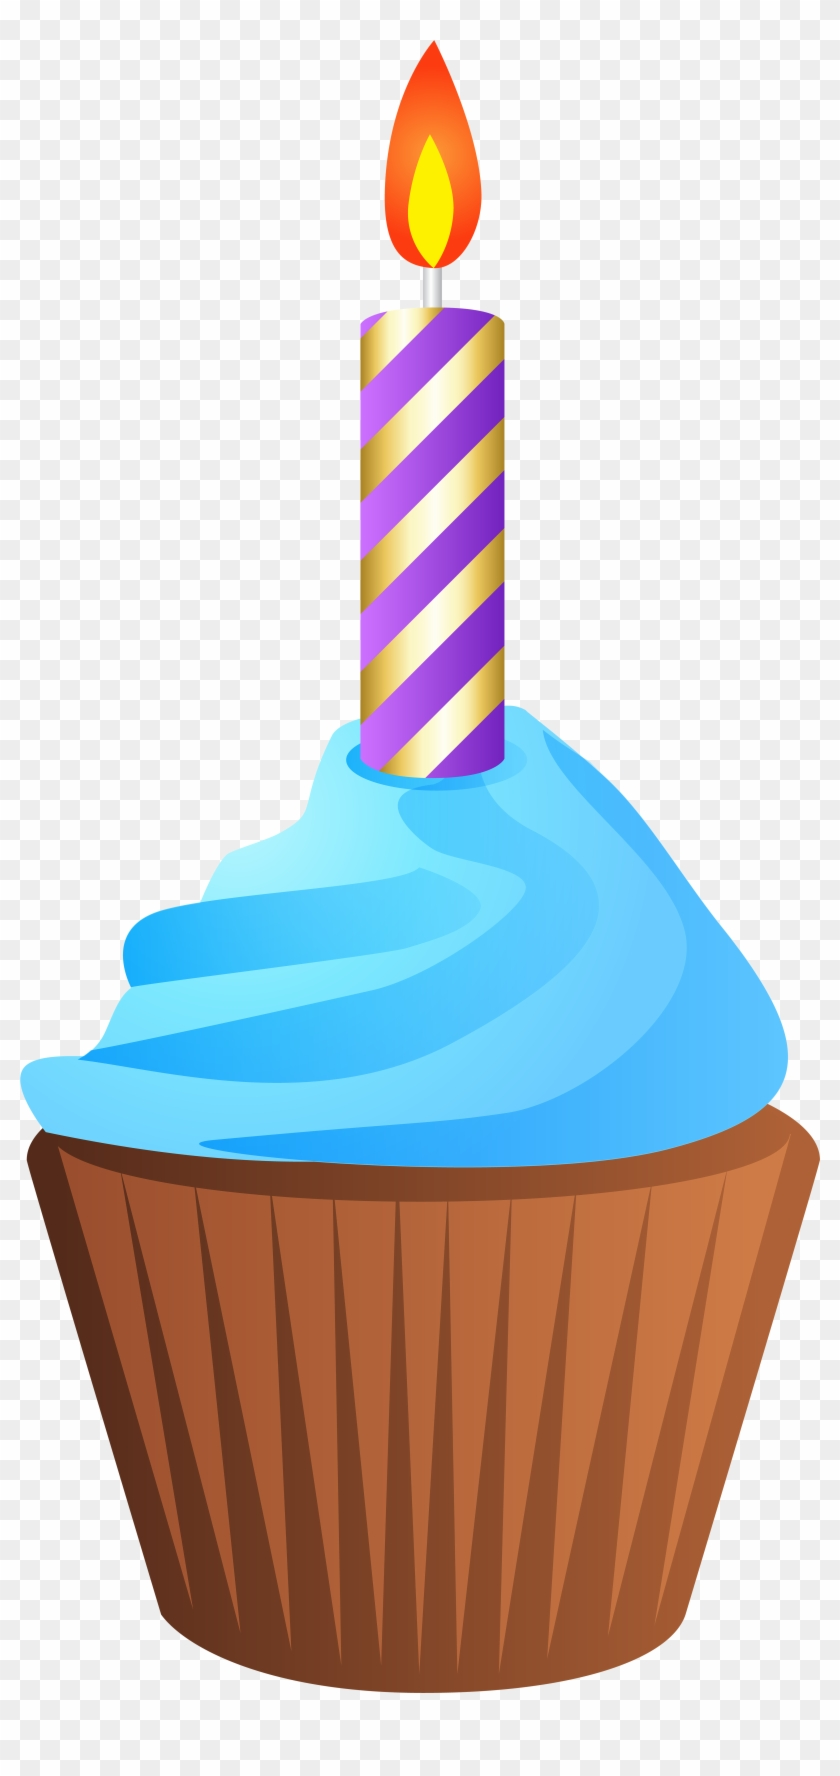 Birthday Cake Muffin Cupcake Clip Art